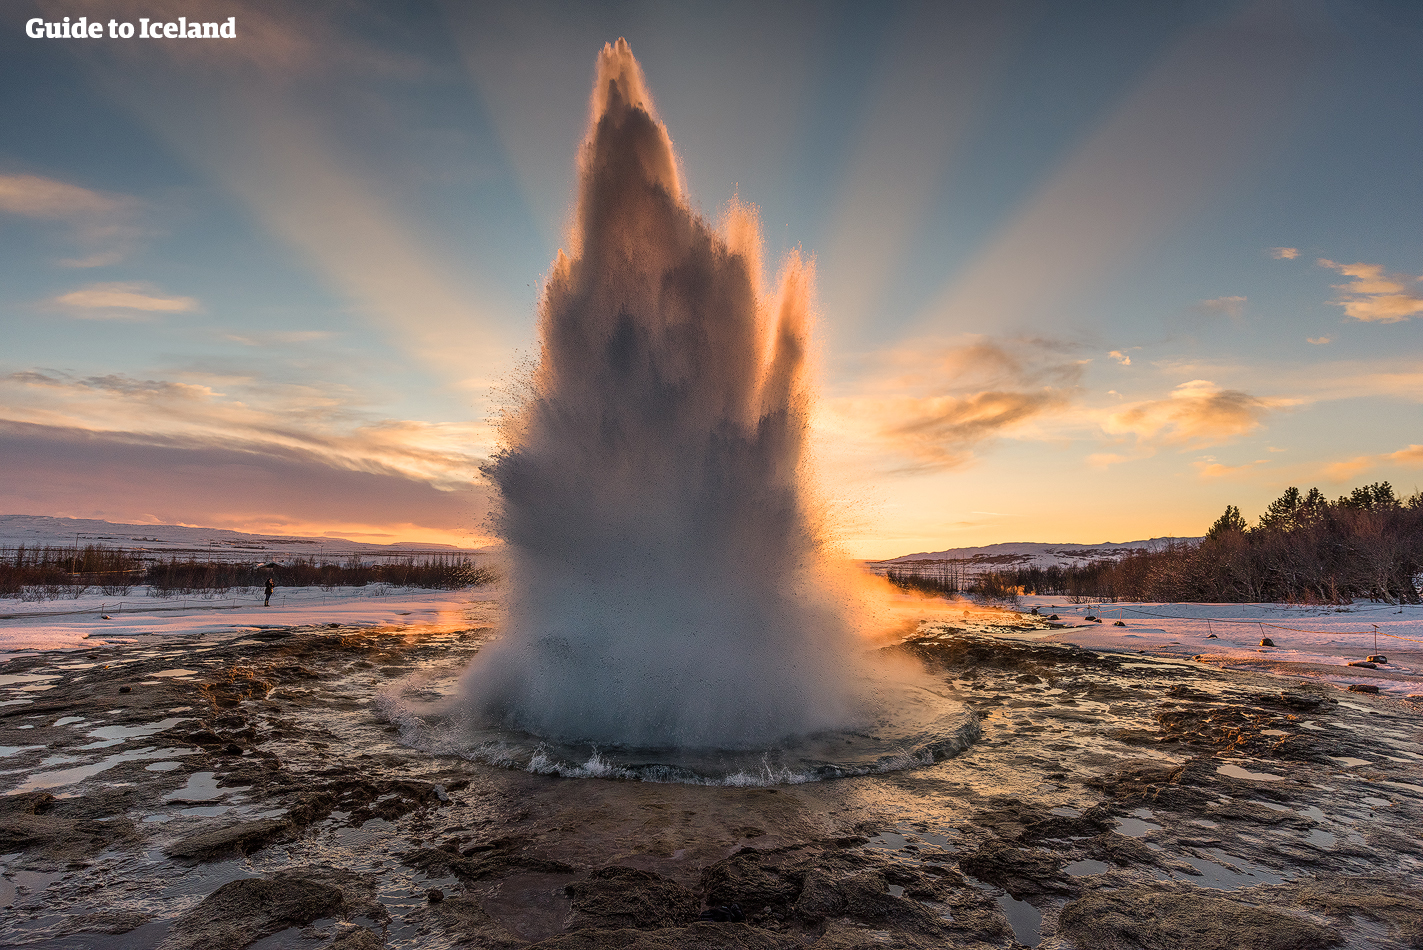 Visit the Geysir geothermal area and see the mighty Strokkur erupt!